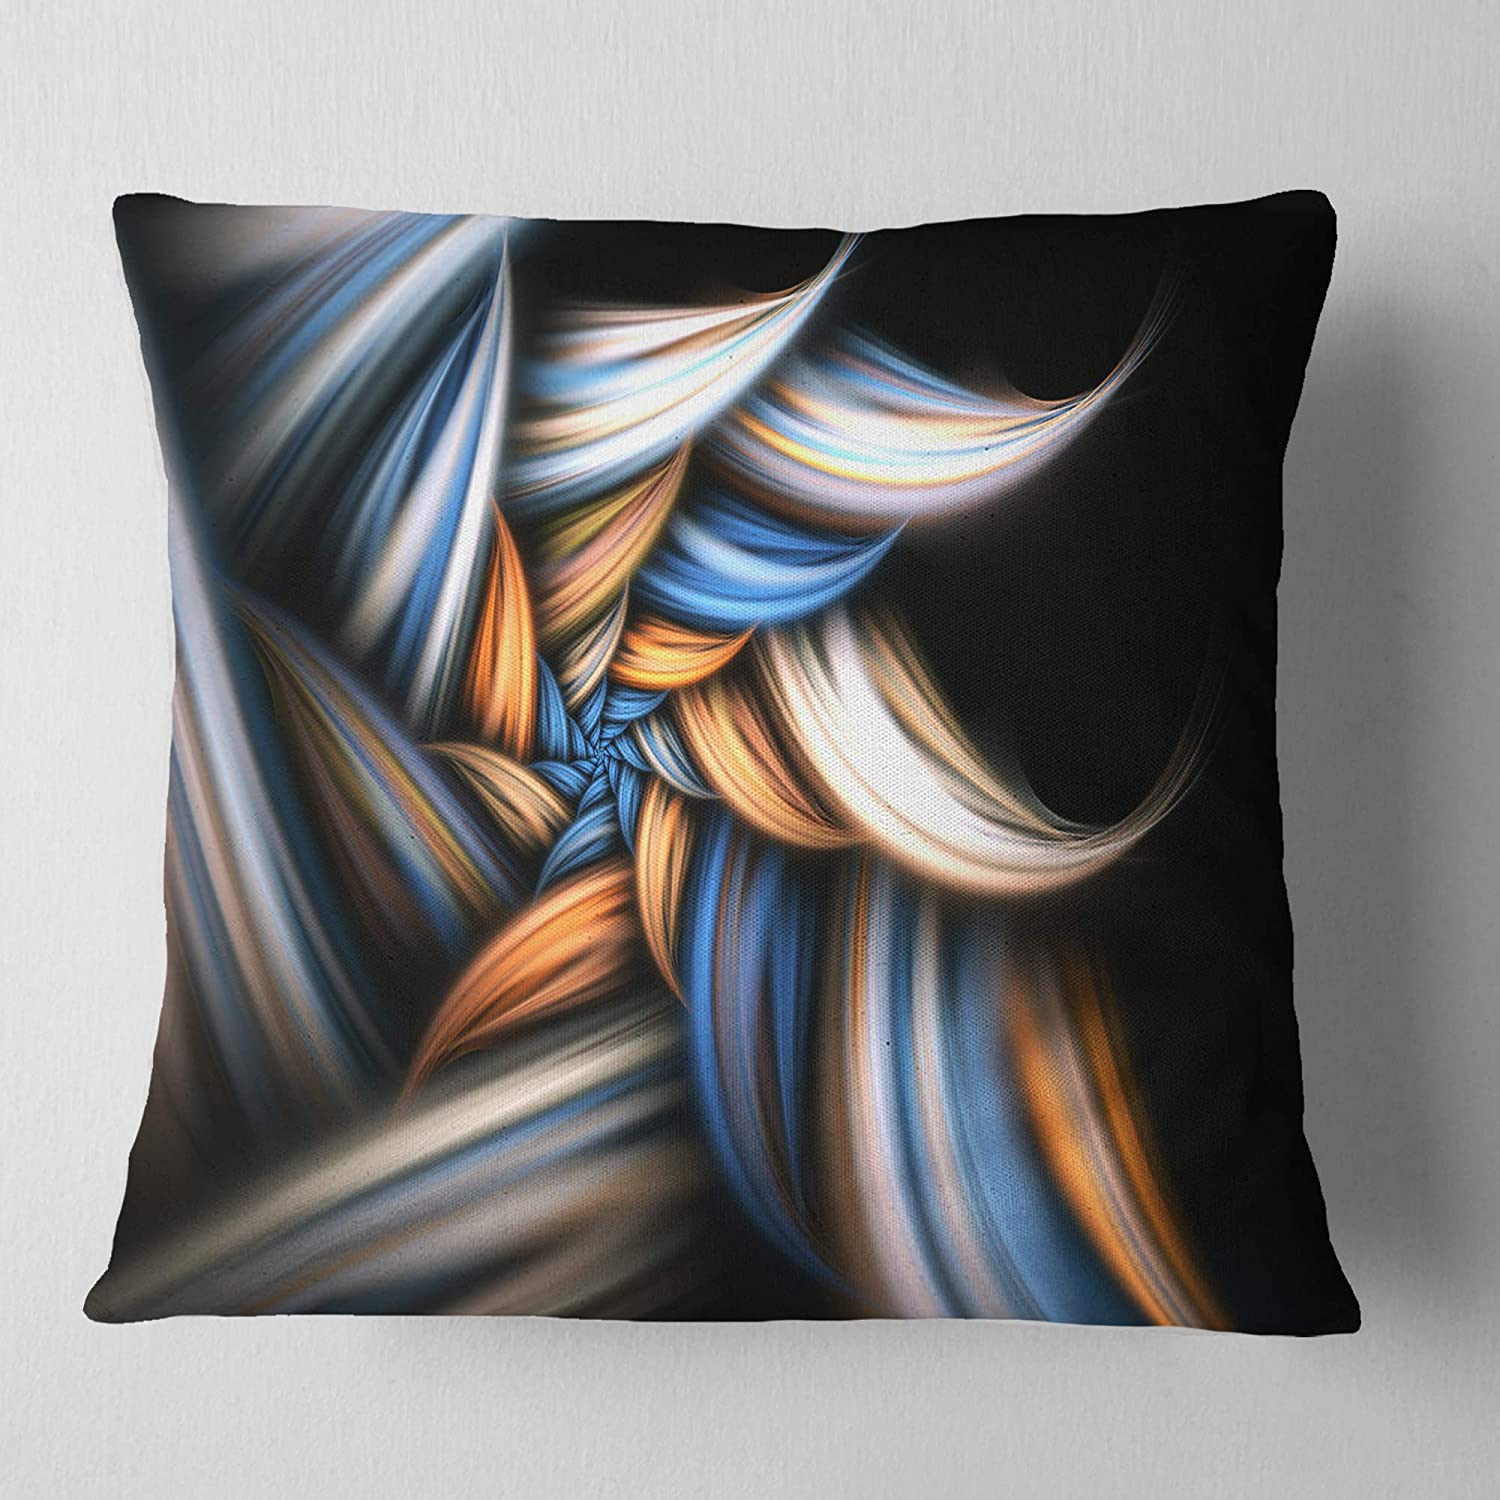 Insert Printed On Both Side in Sofa Throw Pillow 26 in x 26 in Designart CU11914-26-26 Multi Color Fractal Pattern in Black Floral Cushion Cover for Living Room